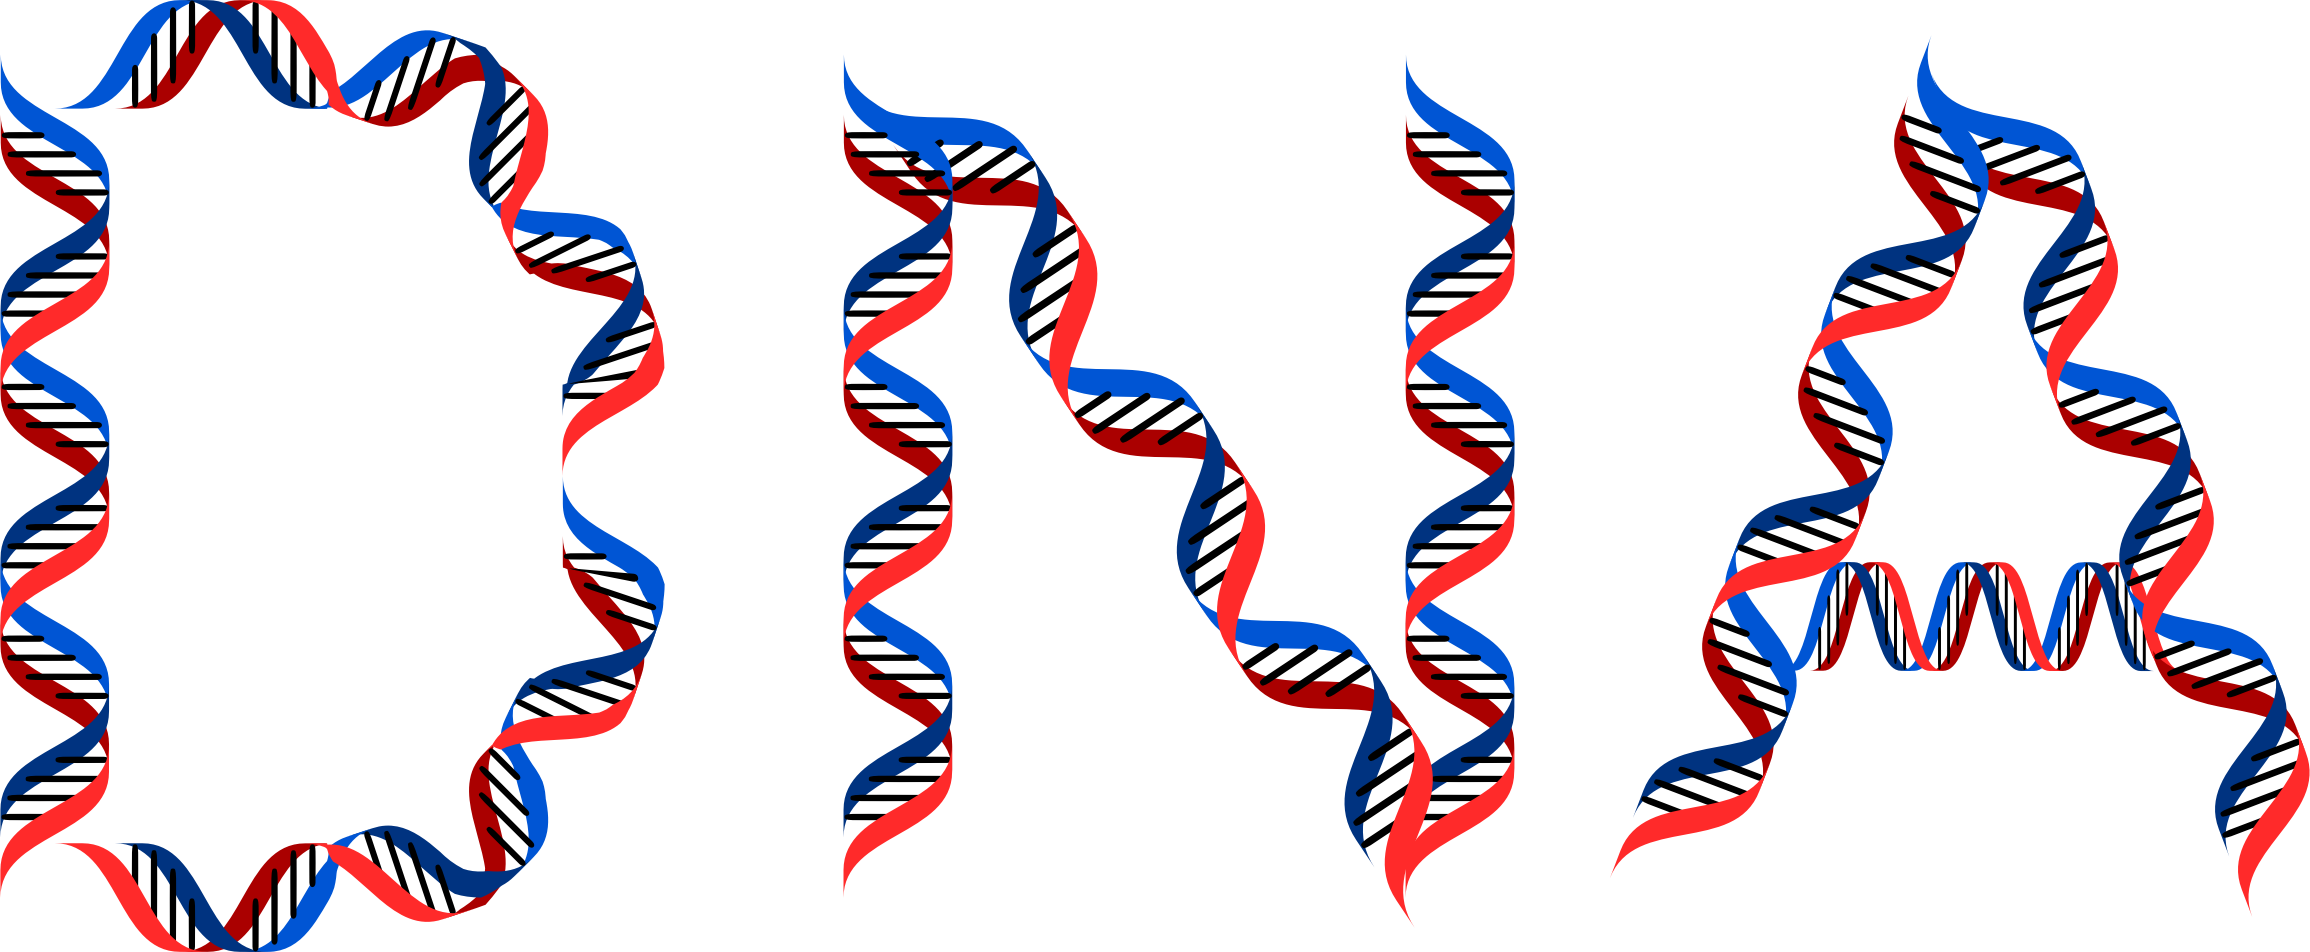 Dna png. Typography icons free and